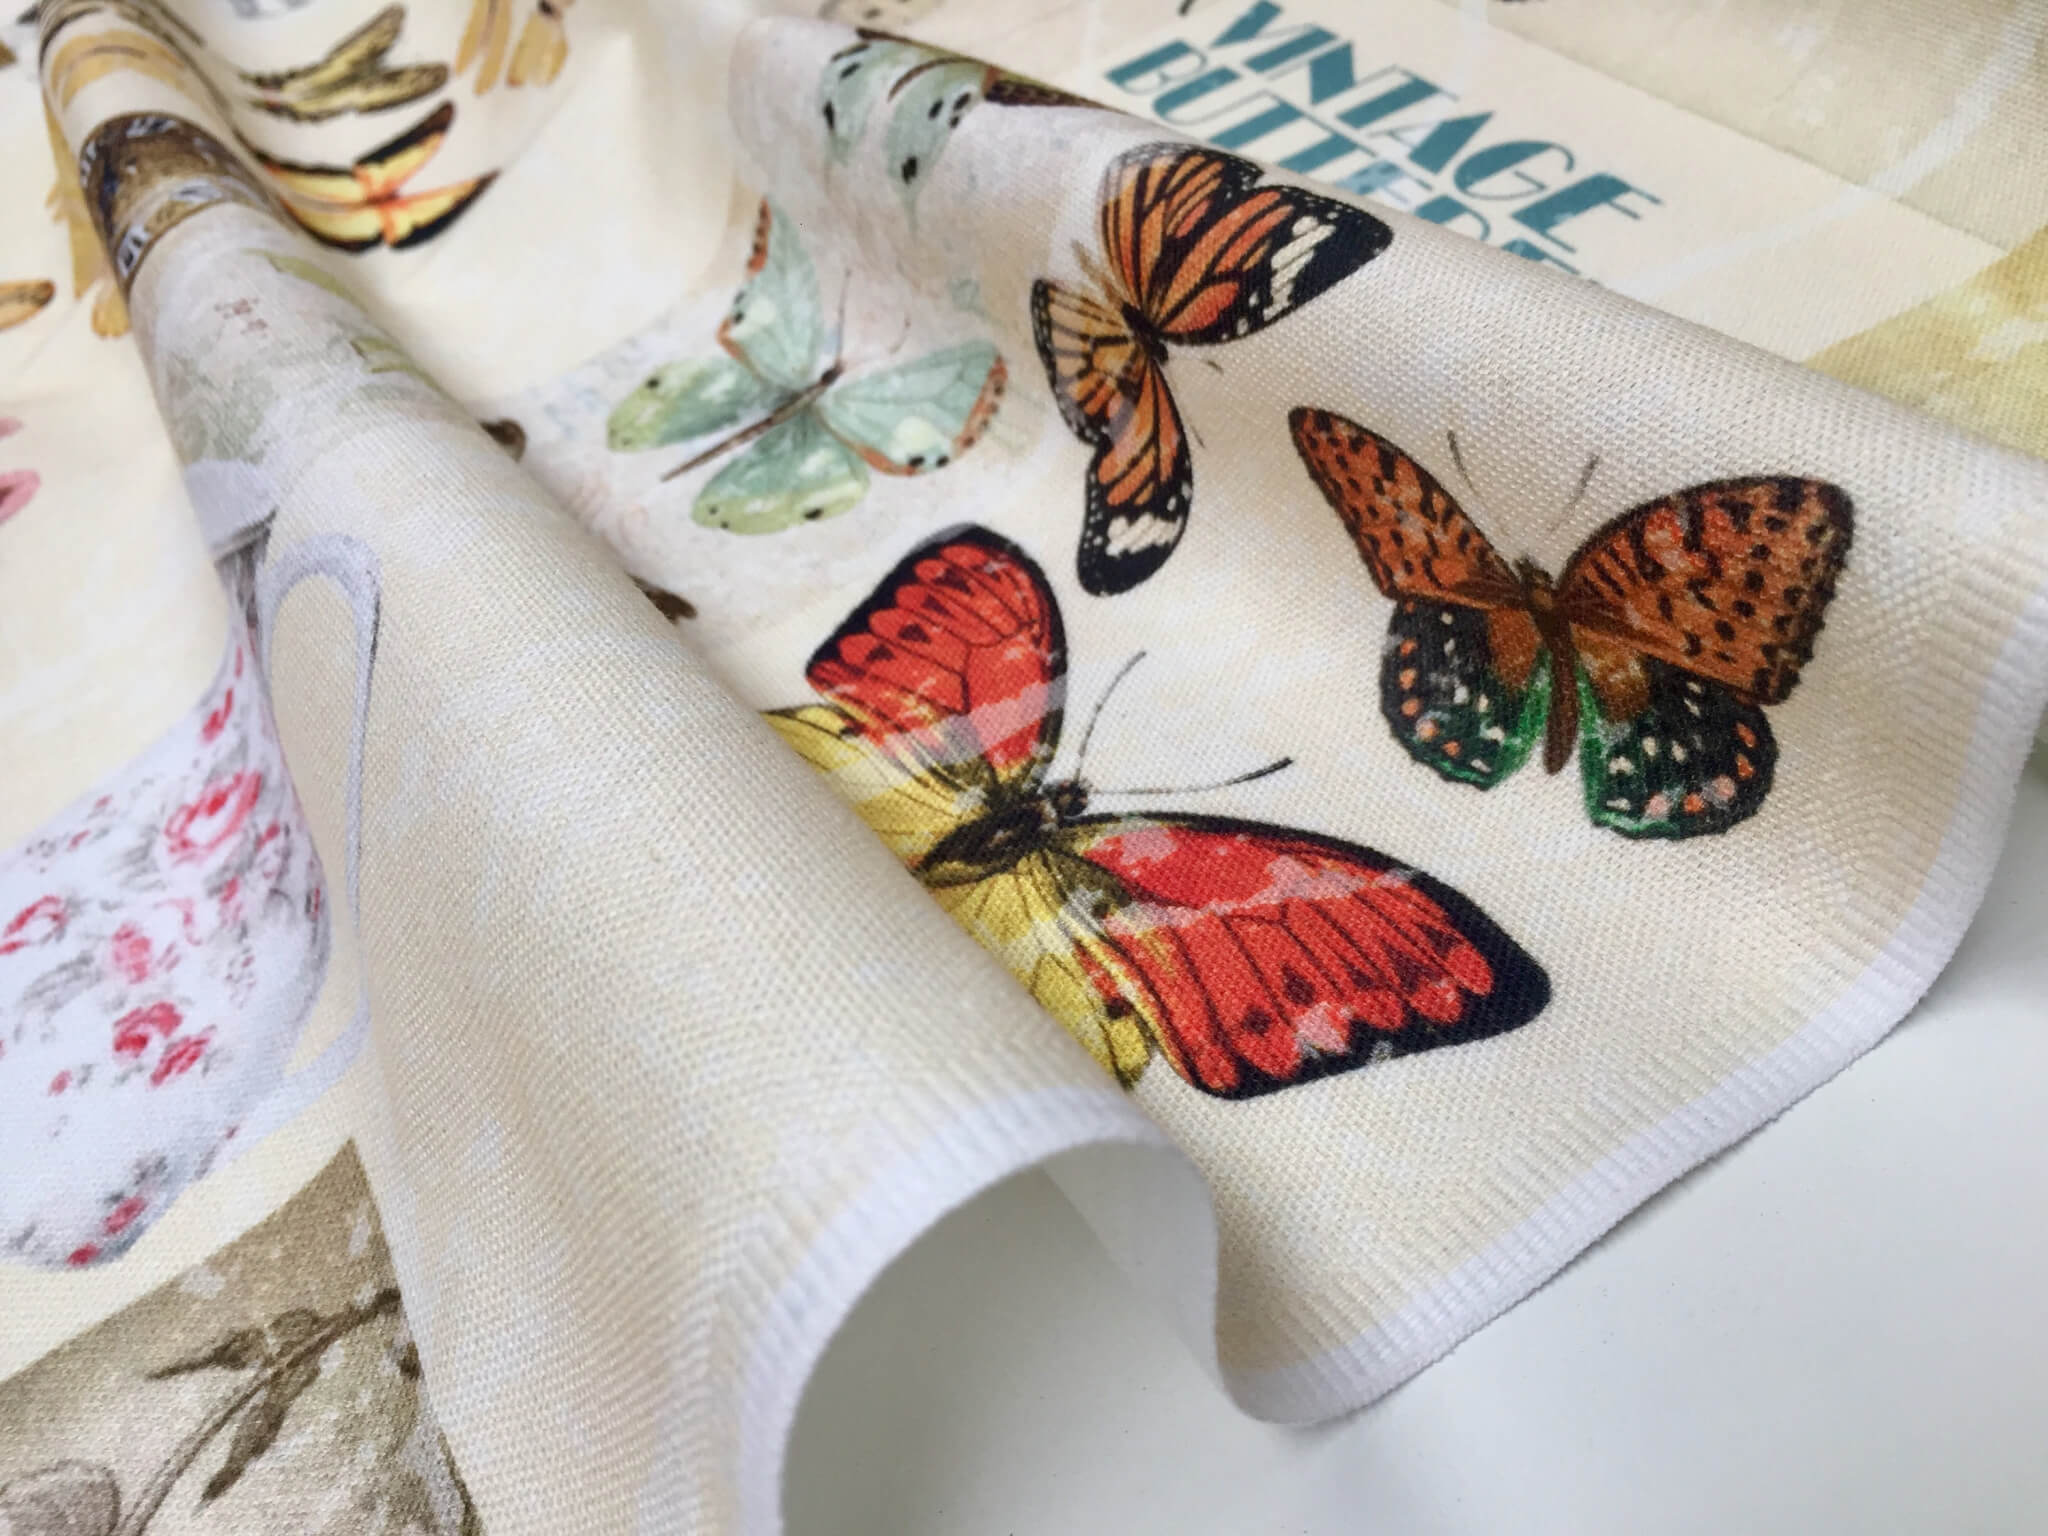 vintage-butterfly-music-note-fabric-cotton-material-for-curtains-upholstery-dress-floral-digital-print-textile-140cm-wide-canvas-5b004b671.jpg